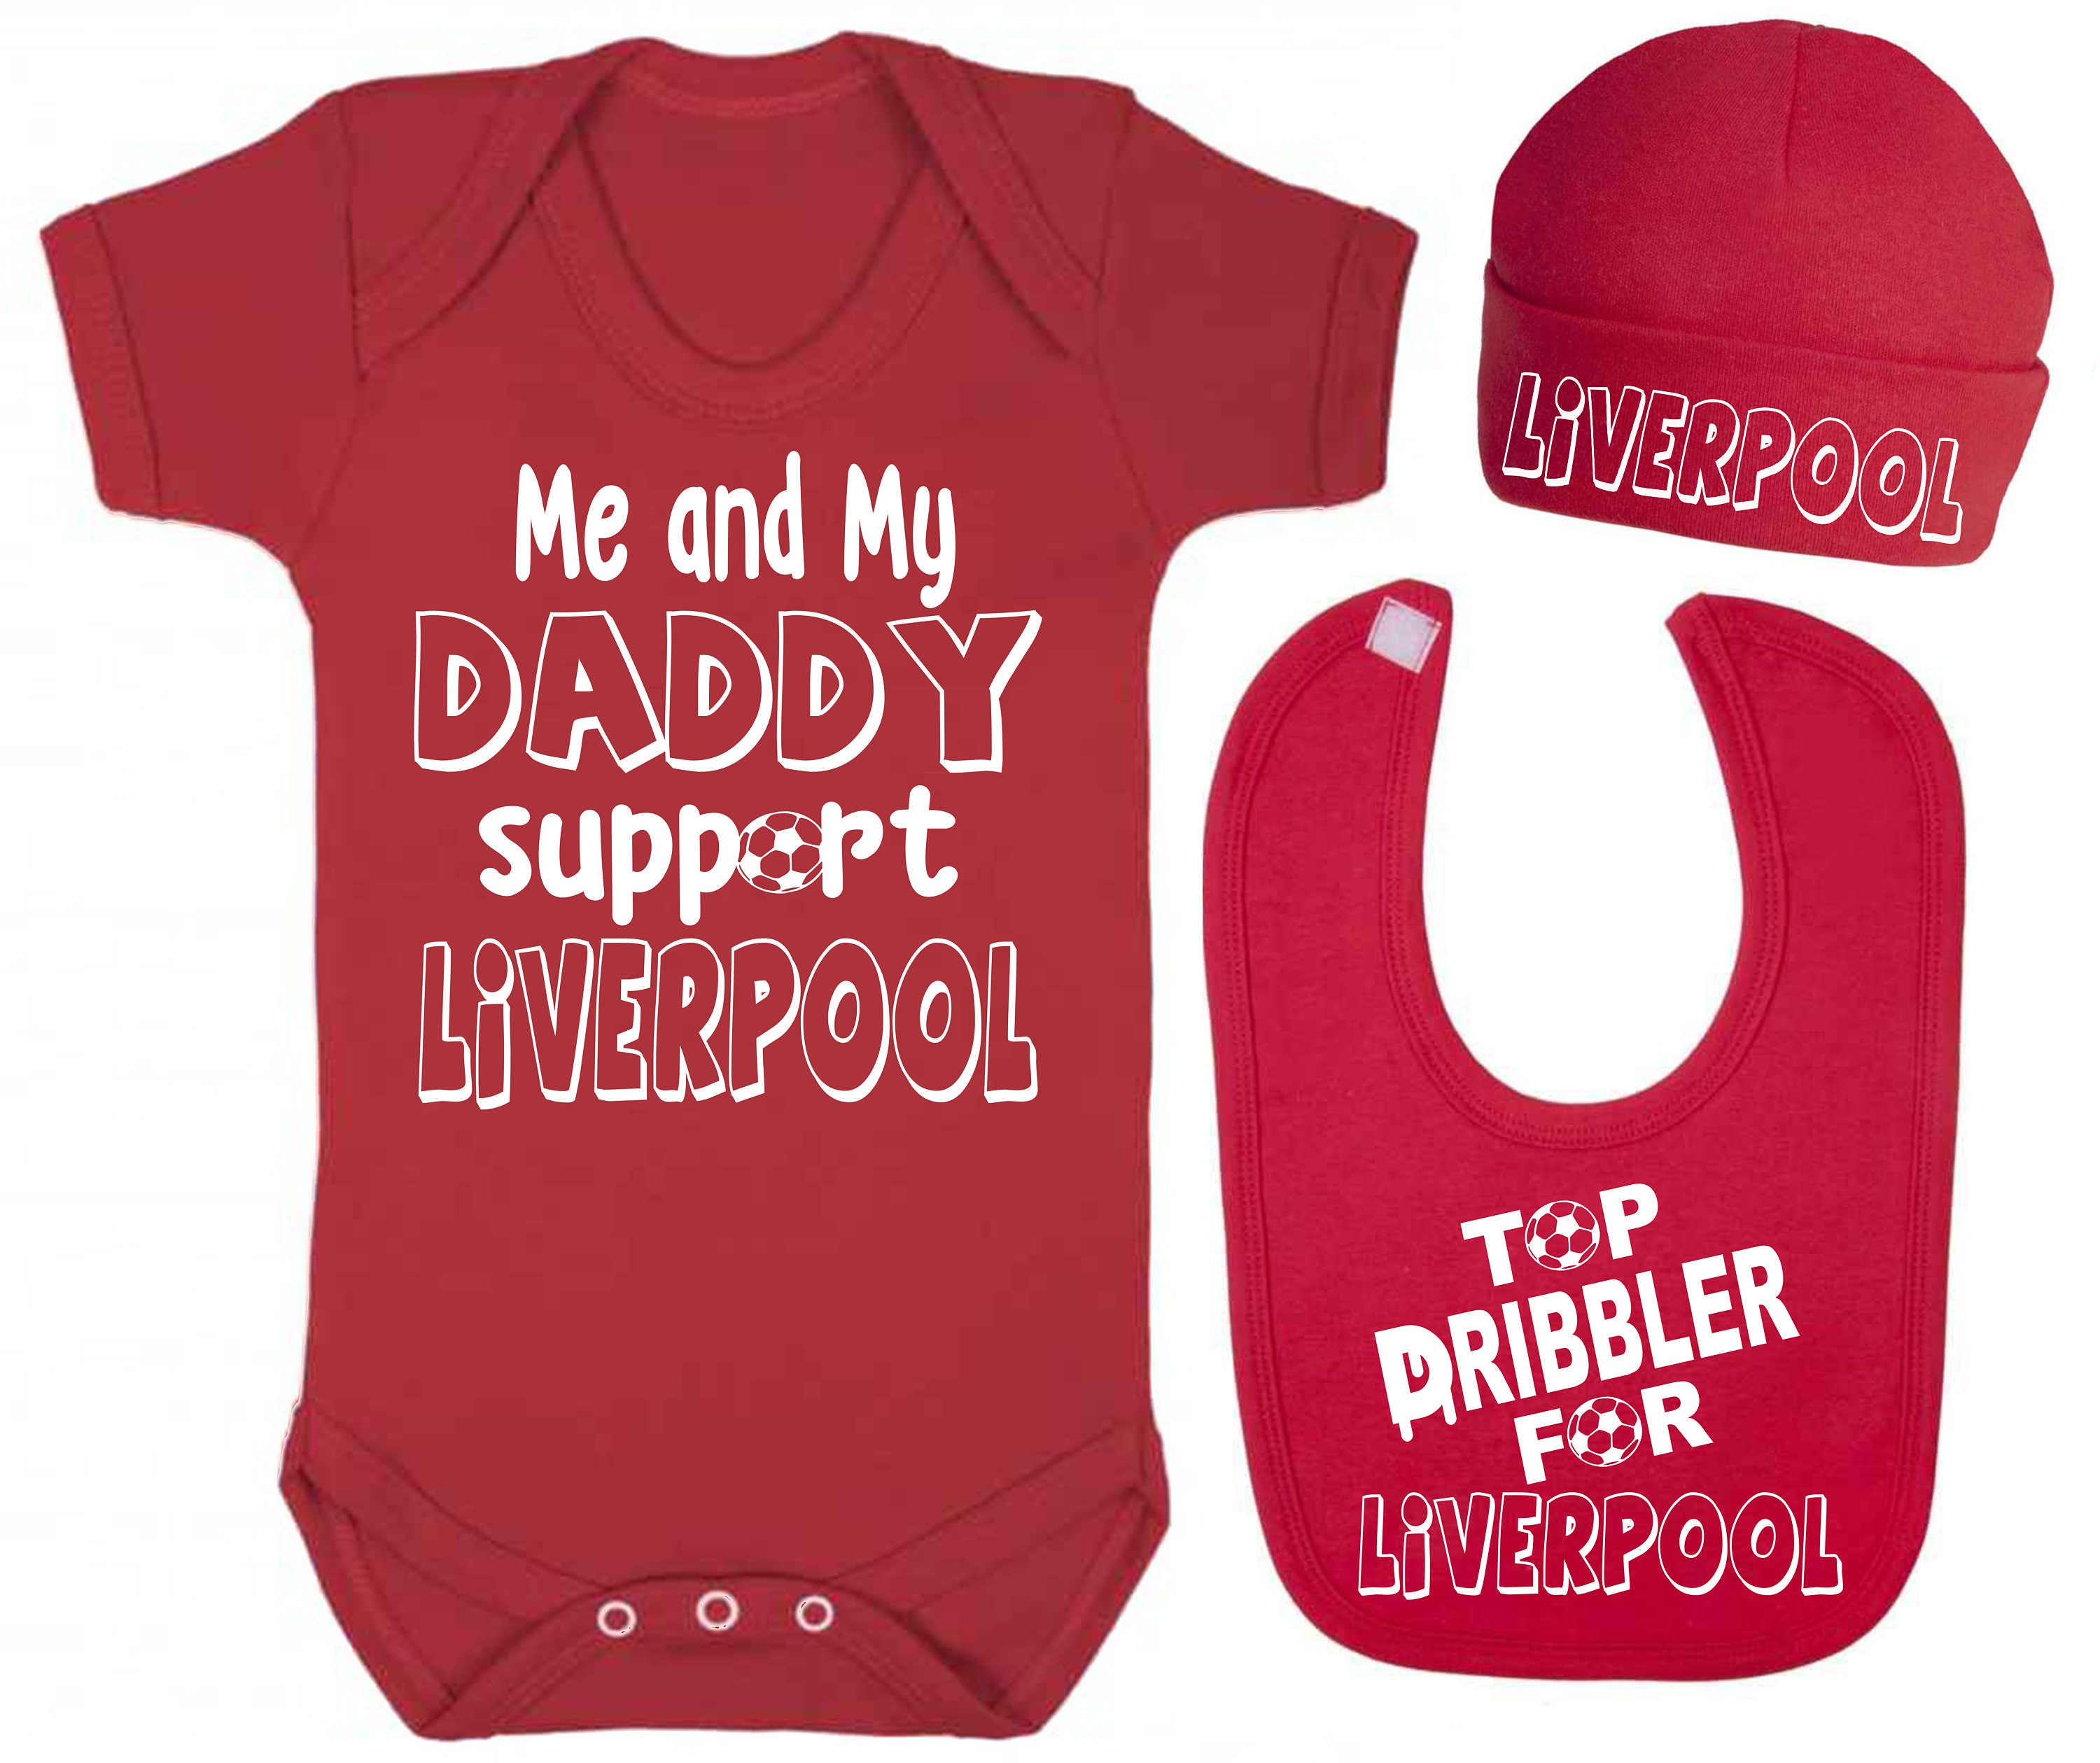 Me and My Daddy Support Liverpool Baby Vest Hat and Bib Set